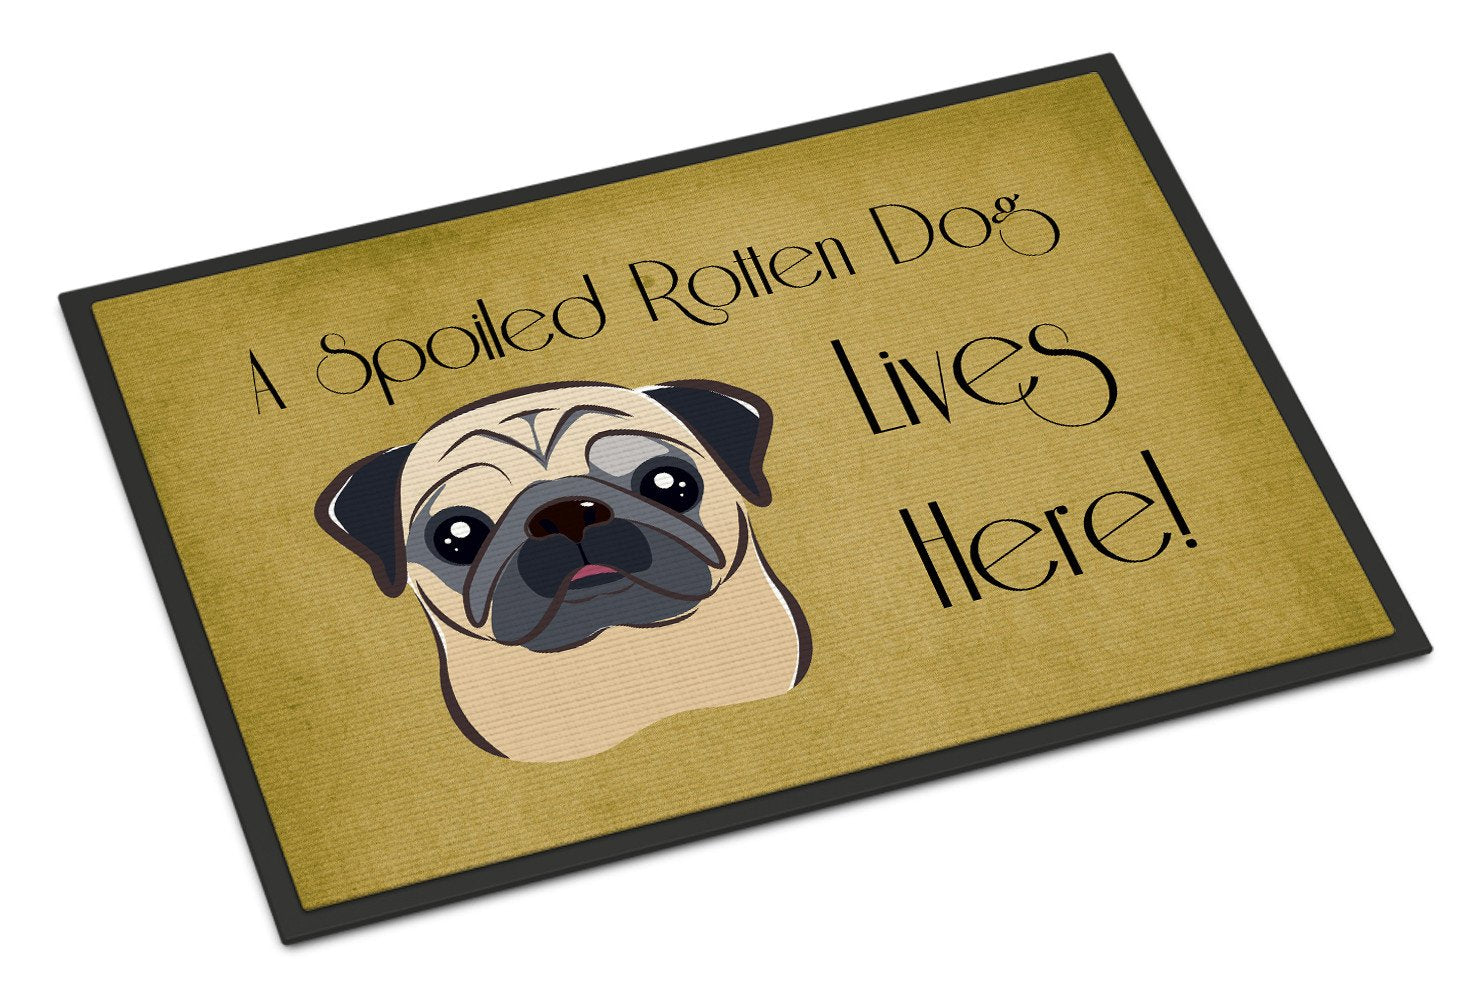 Fawn Pug Spoiled Dog Lives Here Indoor or Outdoor Mat 18x27 BB1510MAT - the-store.com